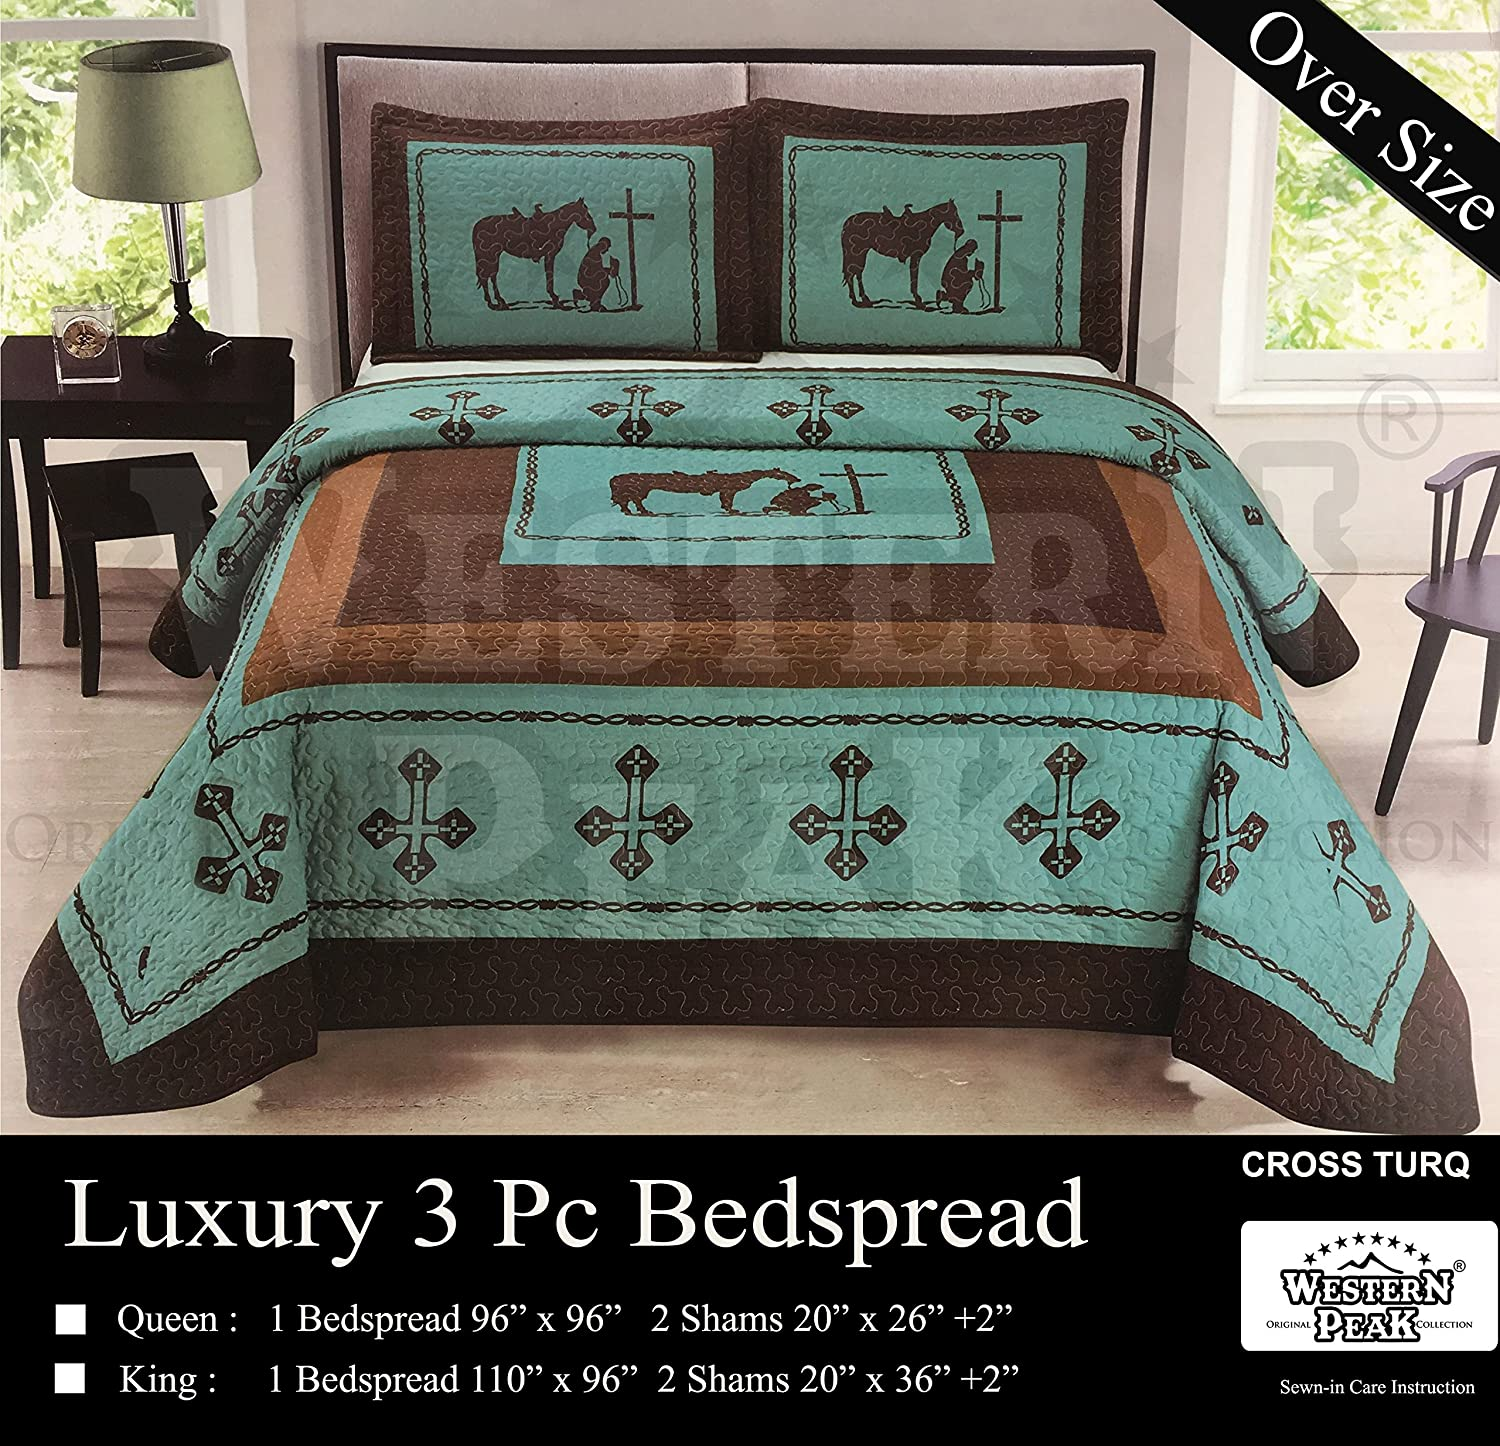 panel center past on donna pattern mountain comforters s the wonderful quilt scene a has shades of cozy cabins typical shows cabin bear wandering with two green lake bears pin sharp